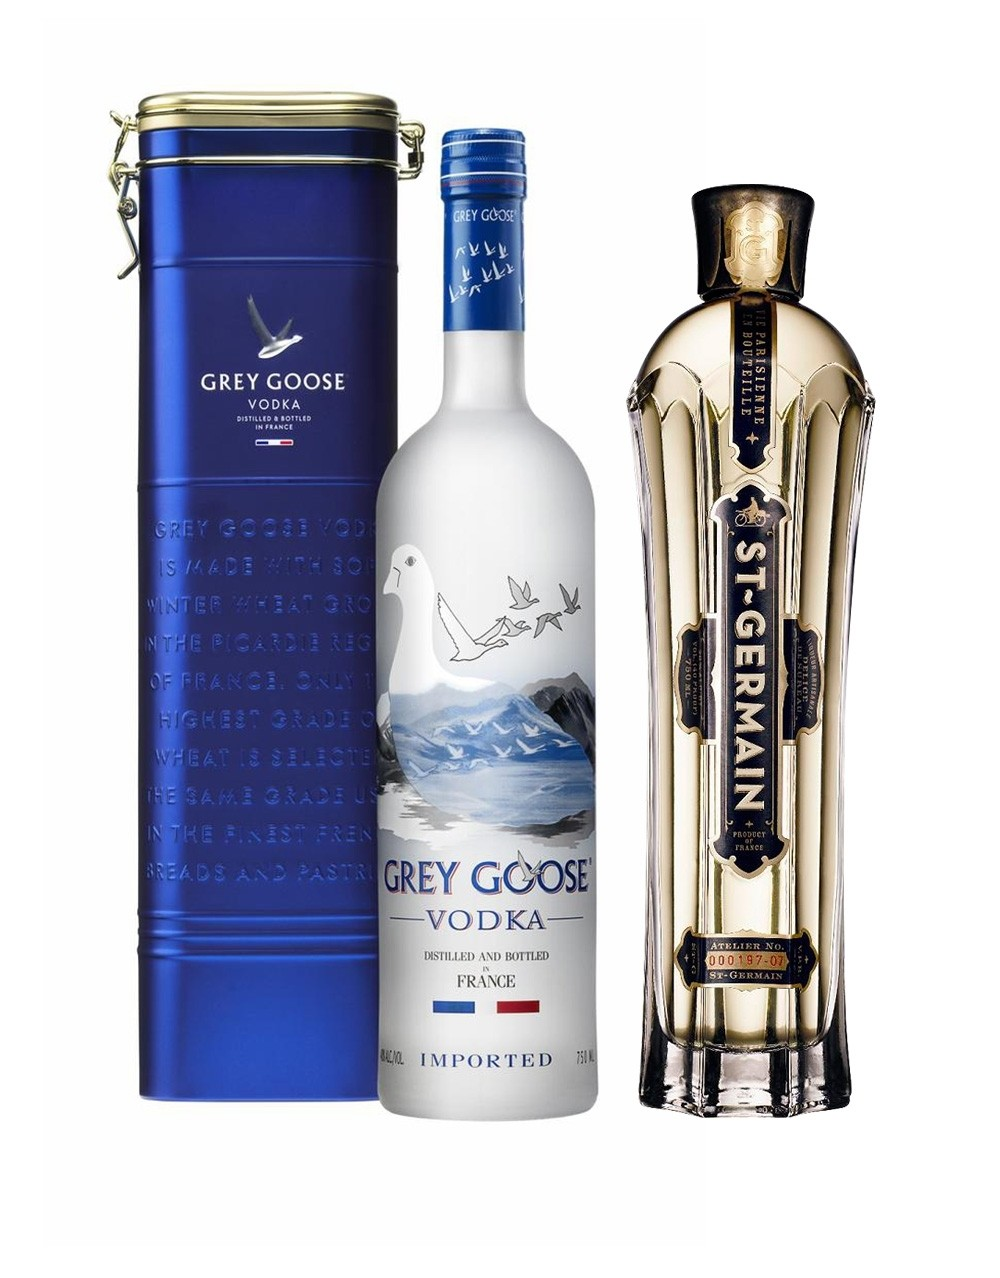 Grey Goose Le Fizz Gift Set Buy Online Or Send As A